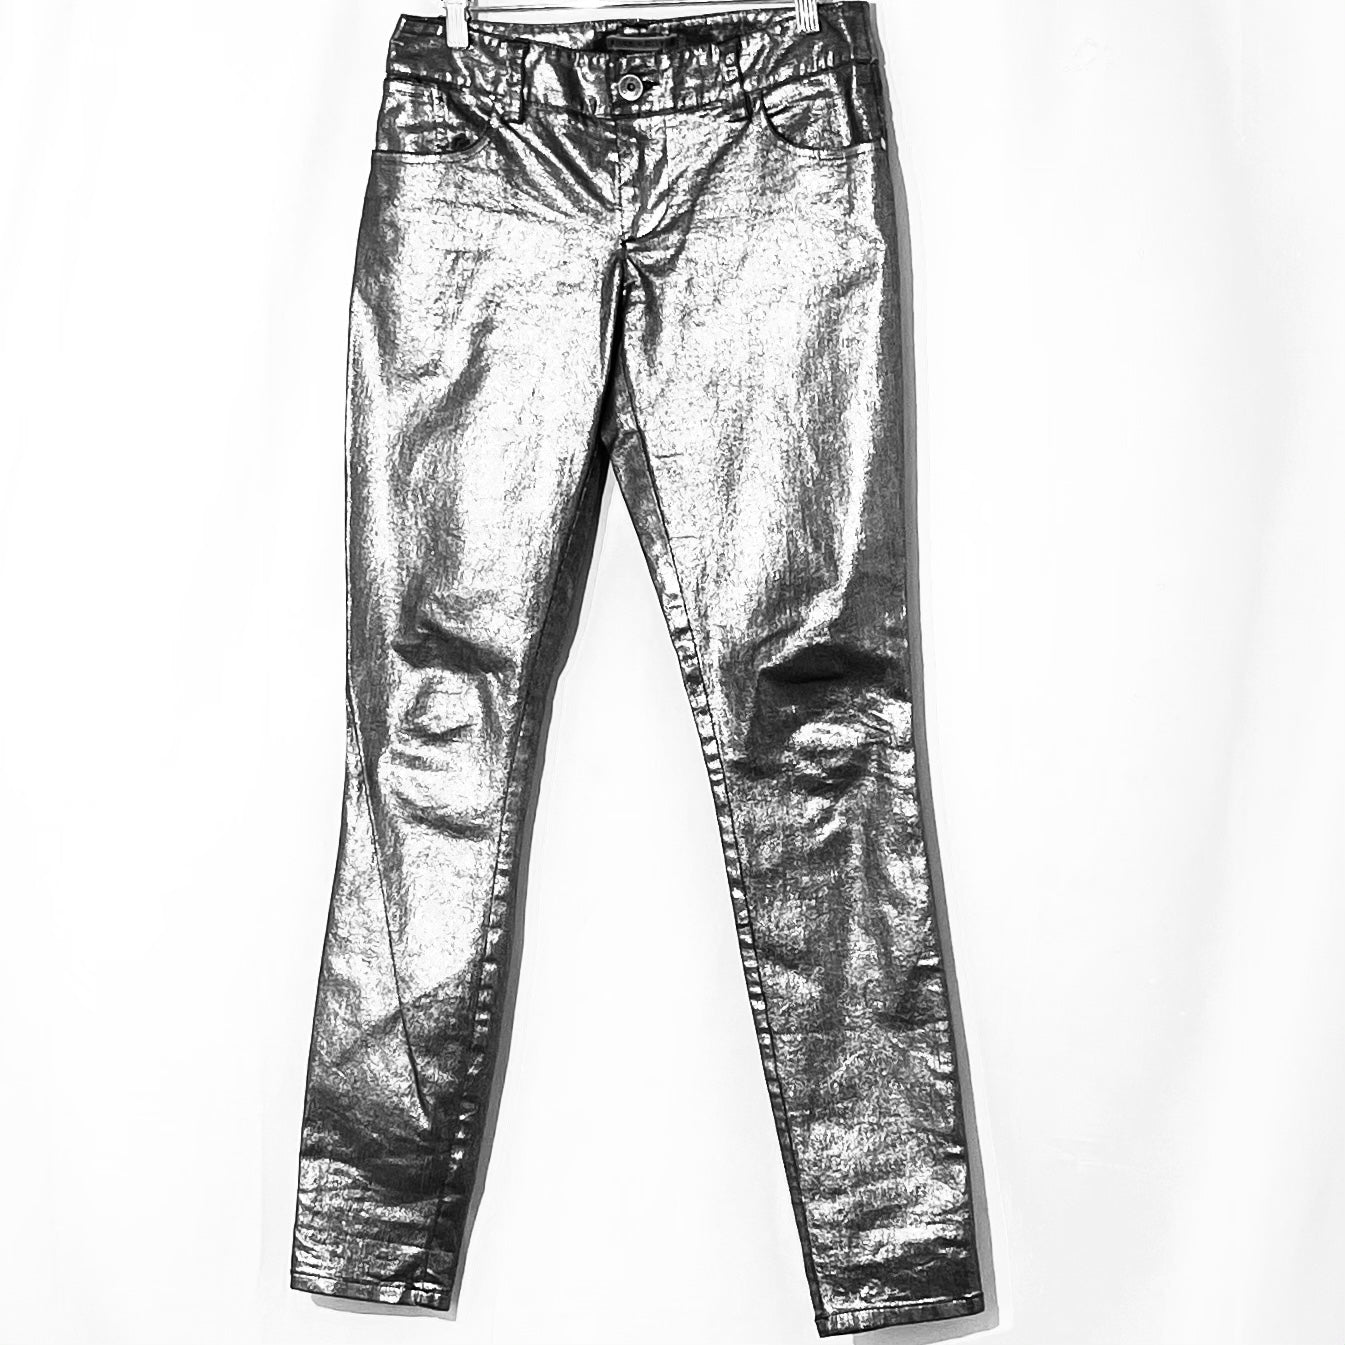 Primary Photo - BRAND: ALICE + OLIVIA <BR>STYLE: PANTS <BR>COLOR: METALLIC <BR>SIZE: 4 <BR>SKU: 262-26275-75851